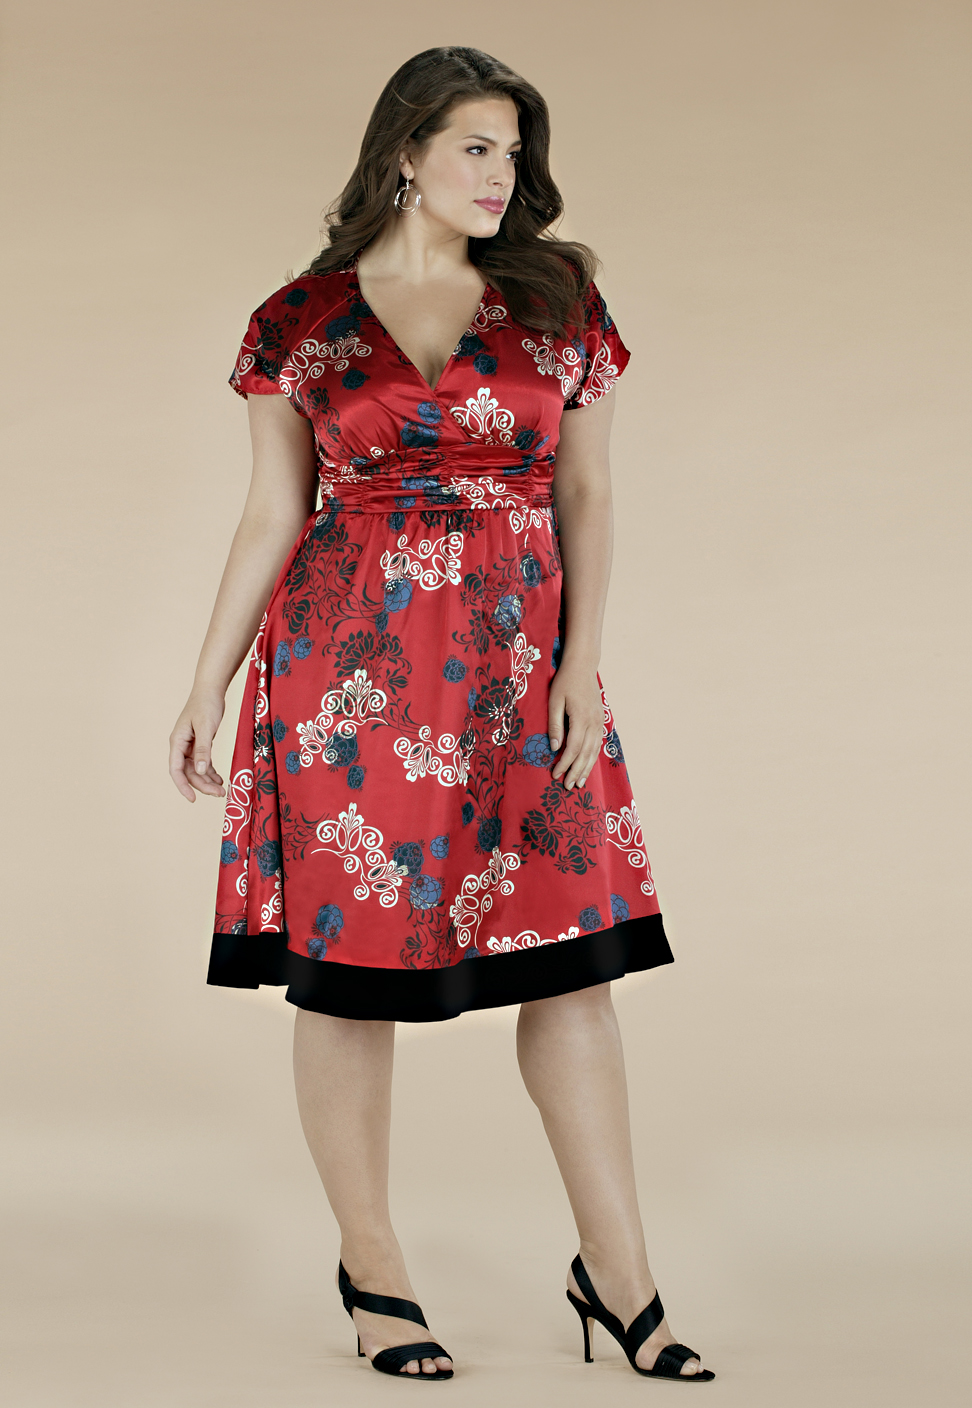 Cato Fashions Plus Size Clothing Cato Plus Size Fashion Stores